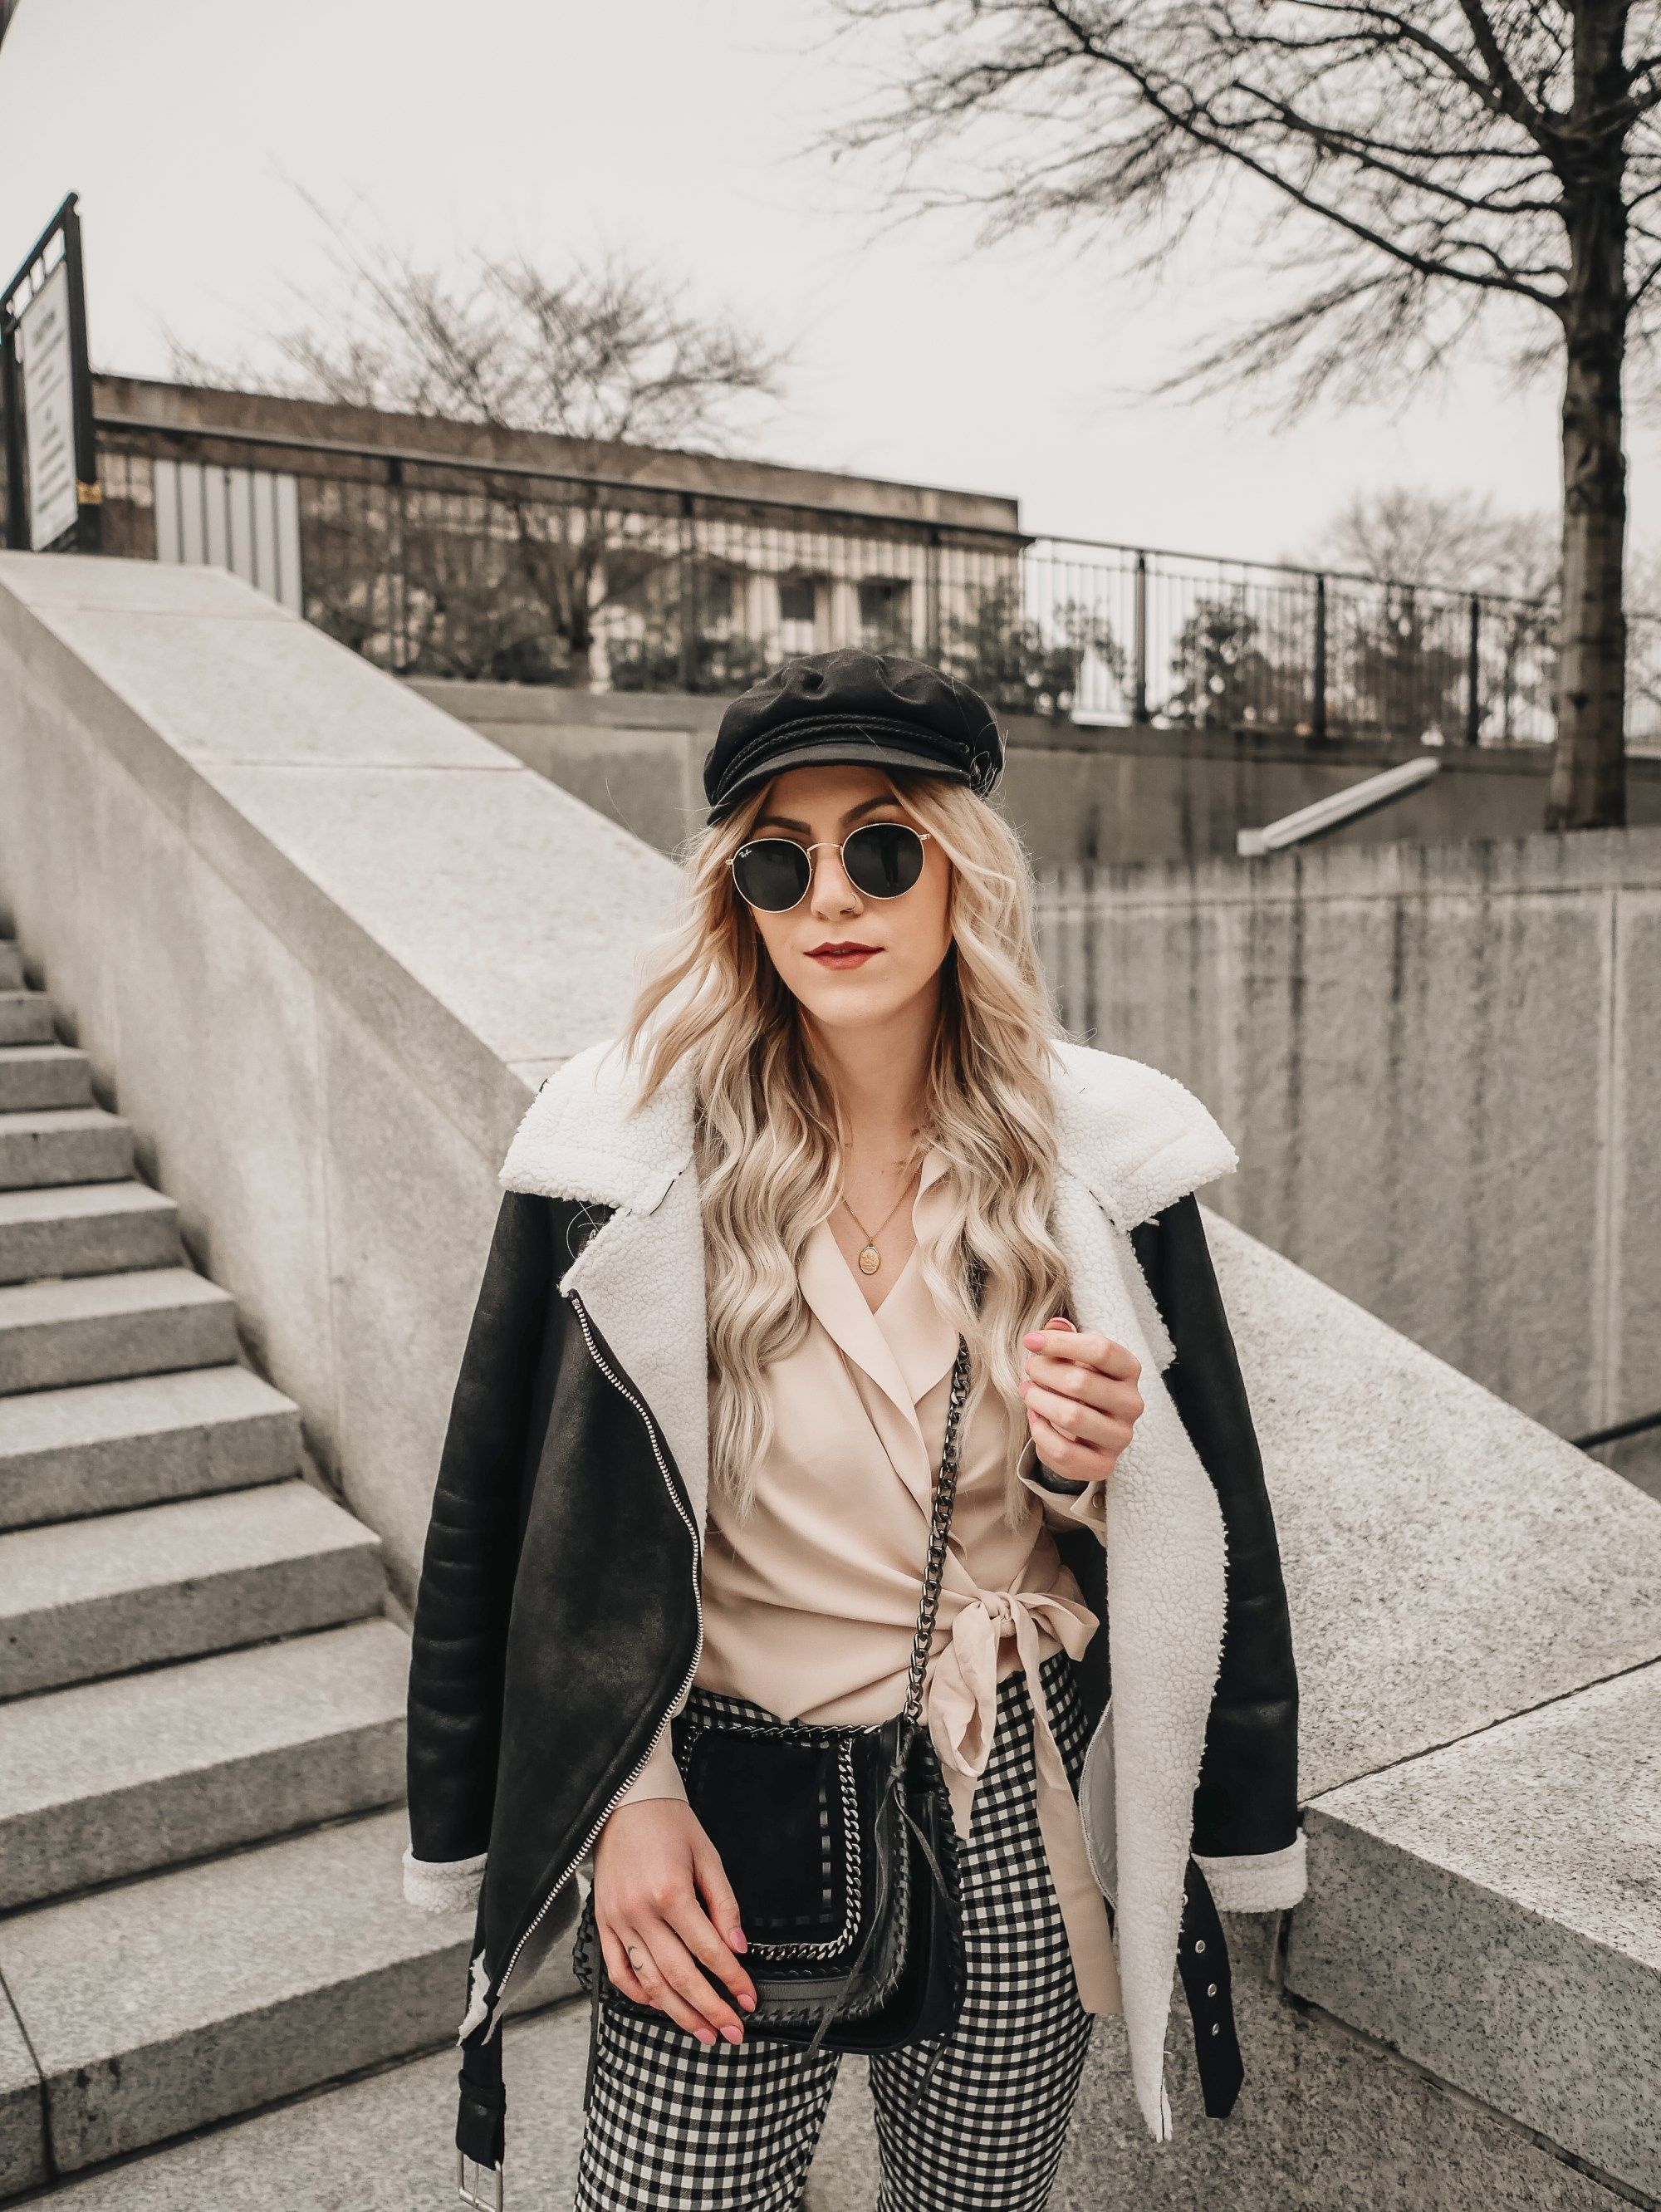 Cream top with checkered pants and a black leather jacket